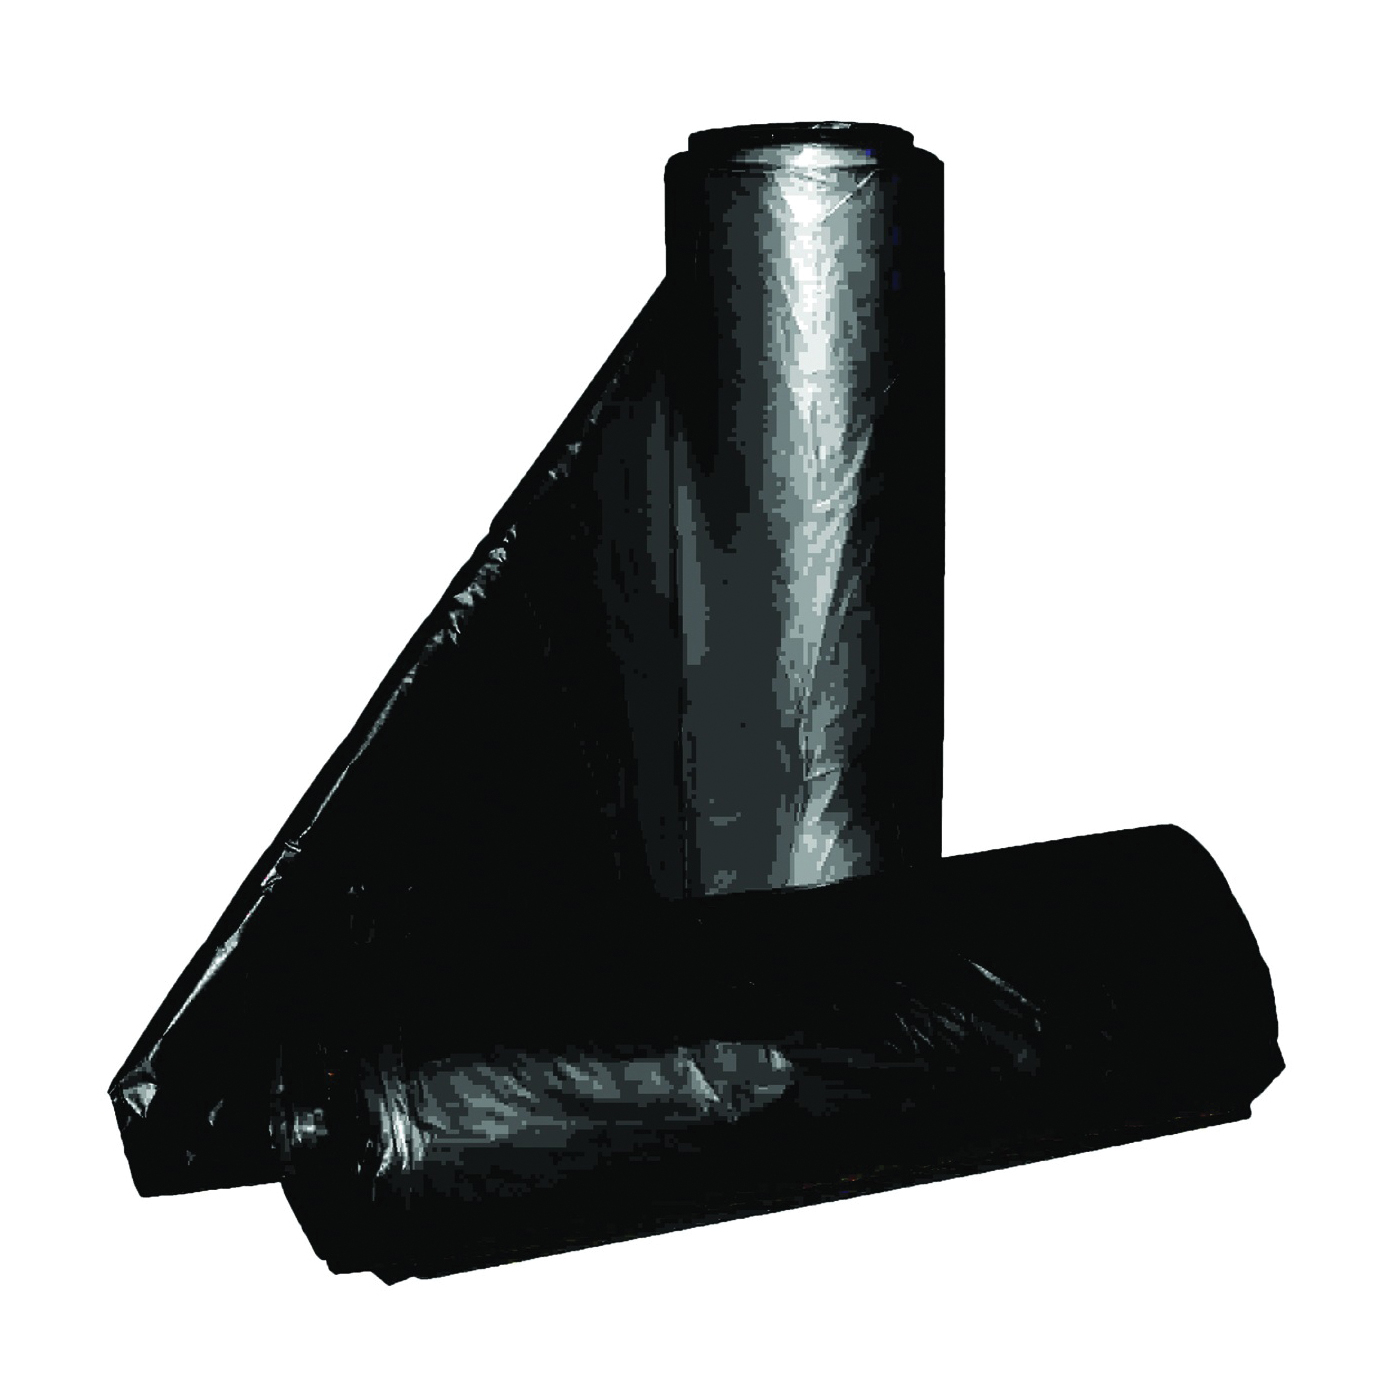 Picture of ALUF PLASTICS RL Series RL-4047H Can Liner, 45 gal Capacity, Repro Blend, Black